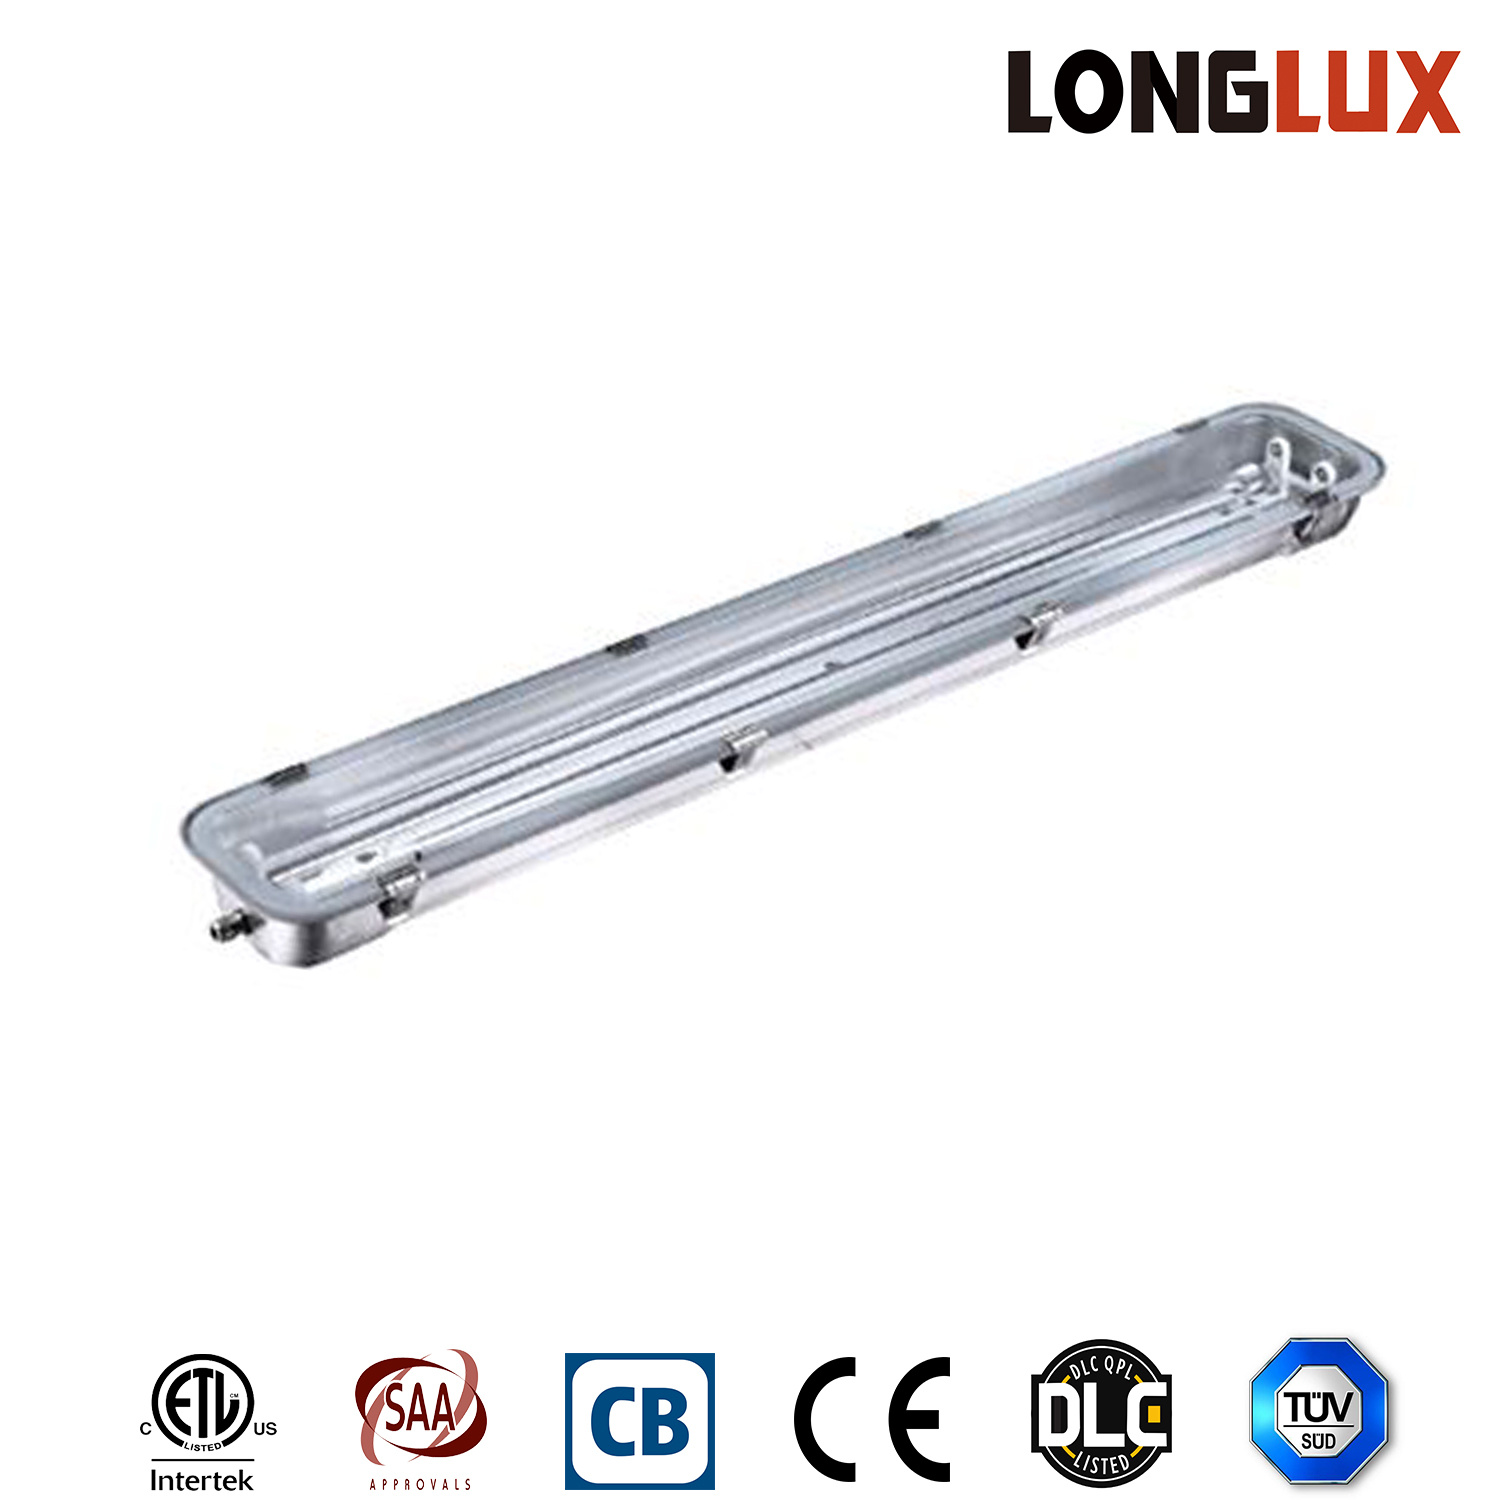 Hot Item 2 58w 1600mm Stainless Steel Light Fixture For Fluorescent Lamp Led